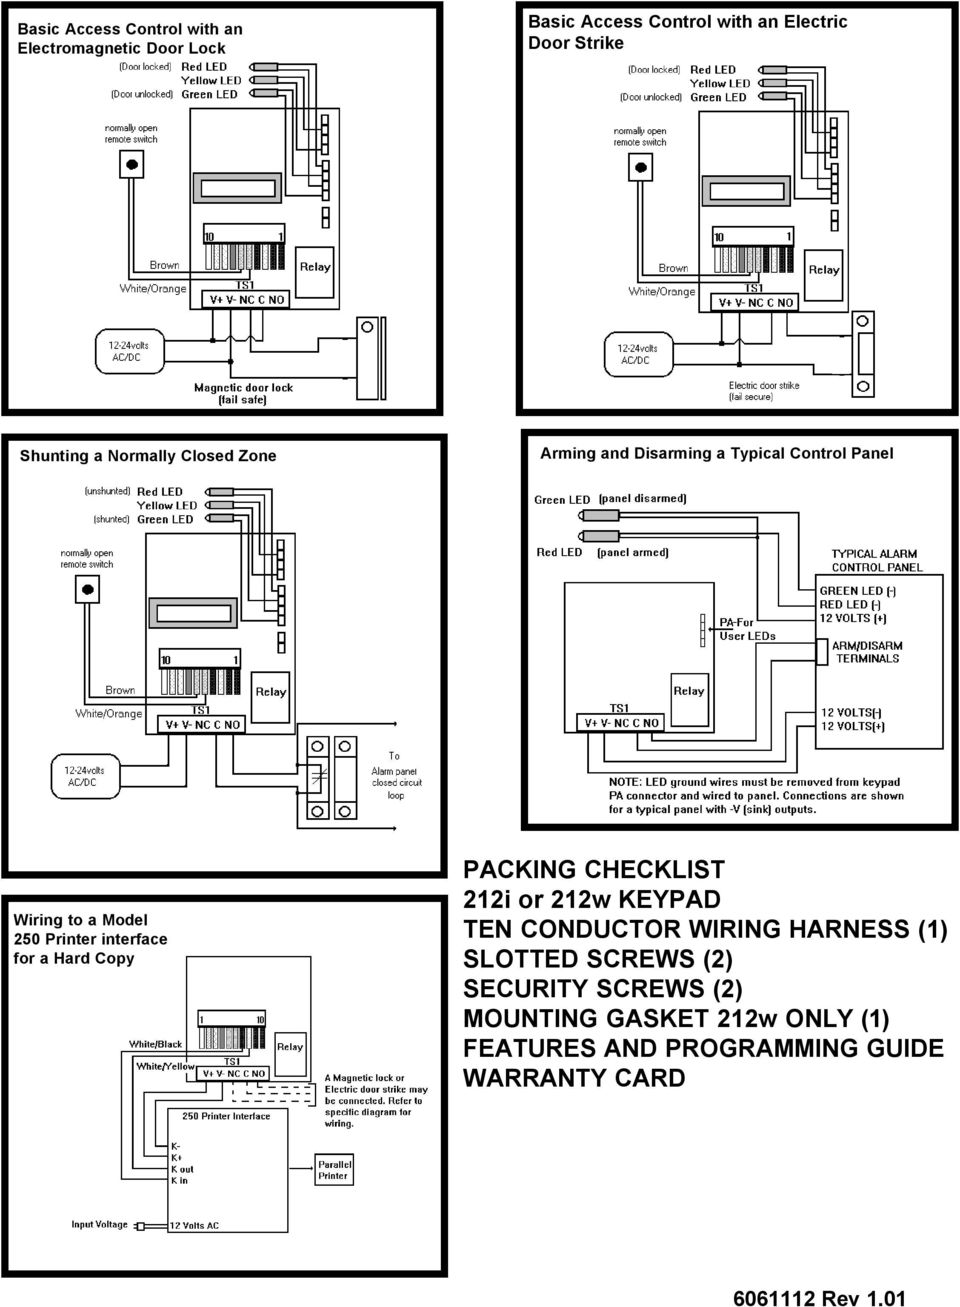 features and programming guide commandandcontrolseries pdf. Black Bedroom Furniture Sets. Home Design Ideas